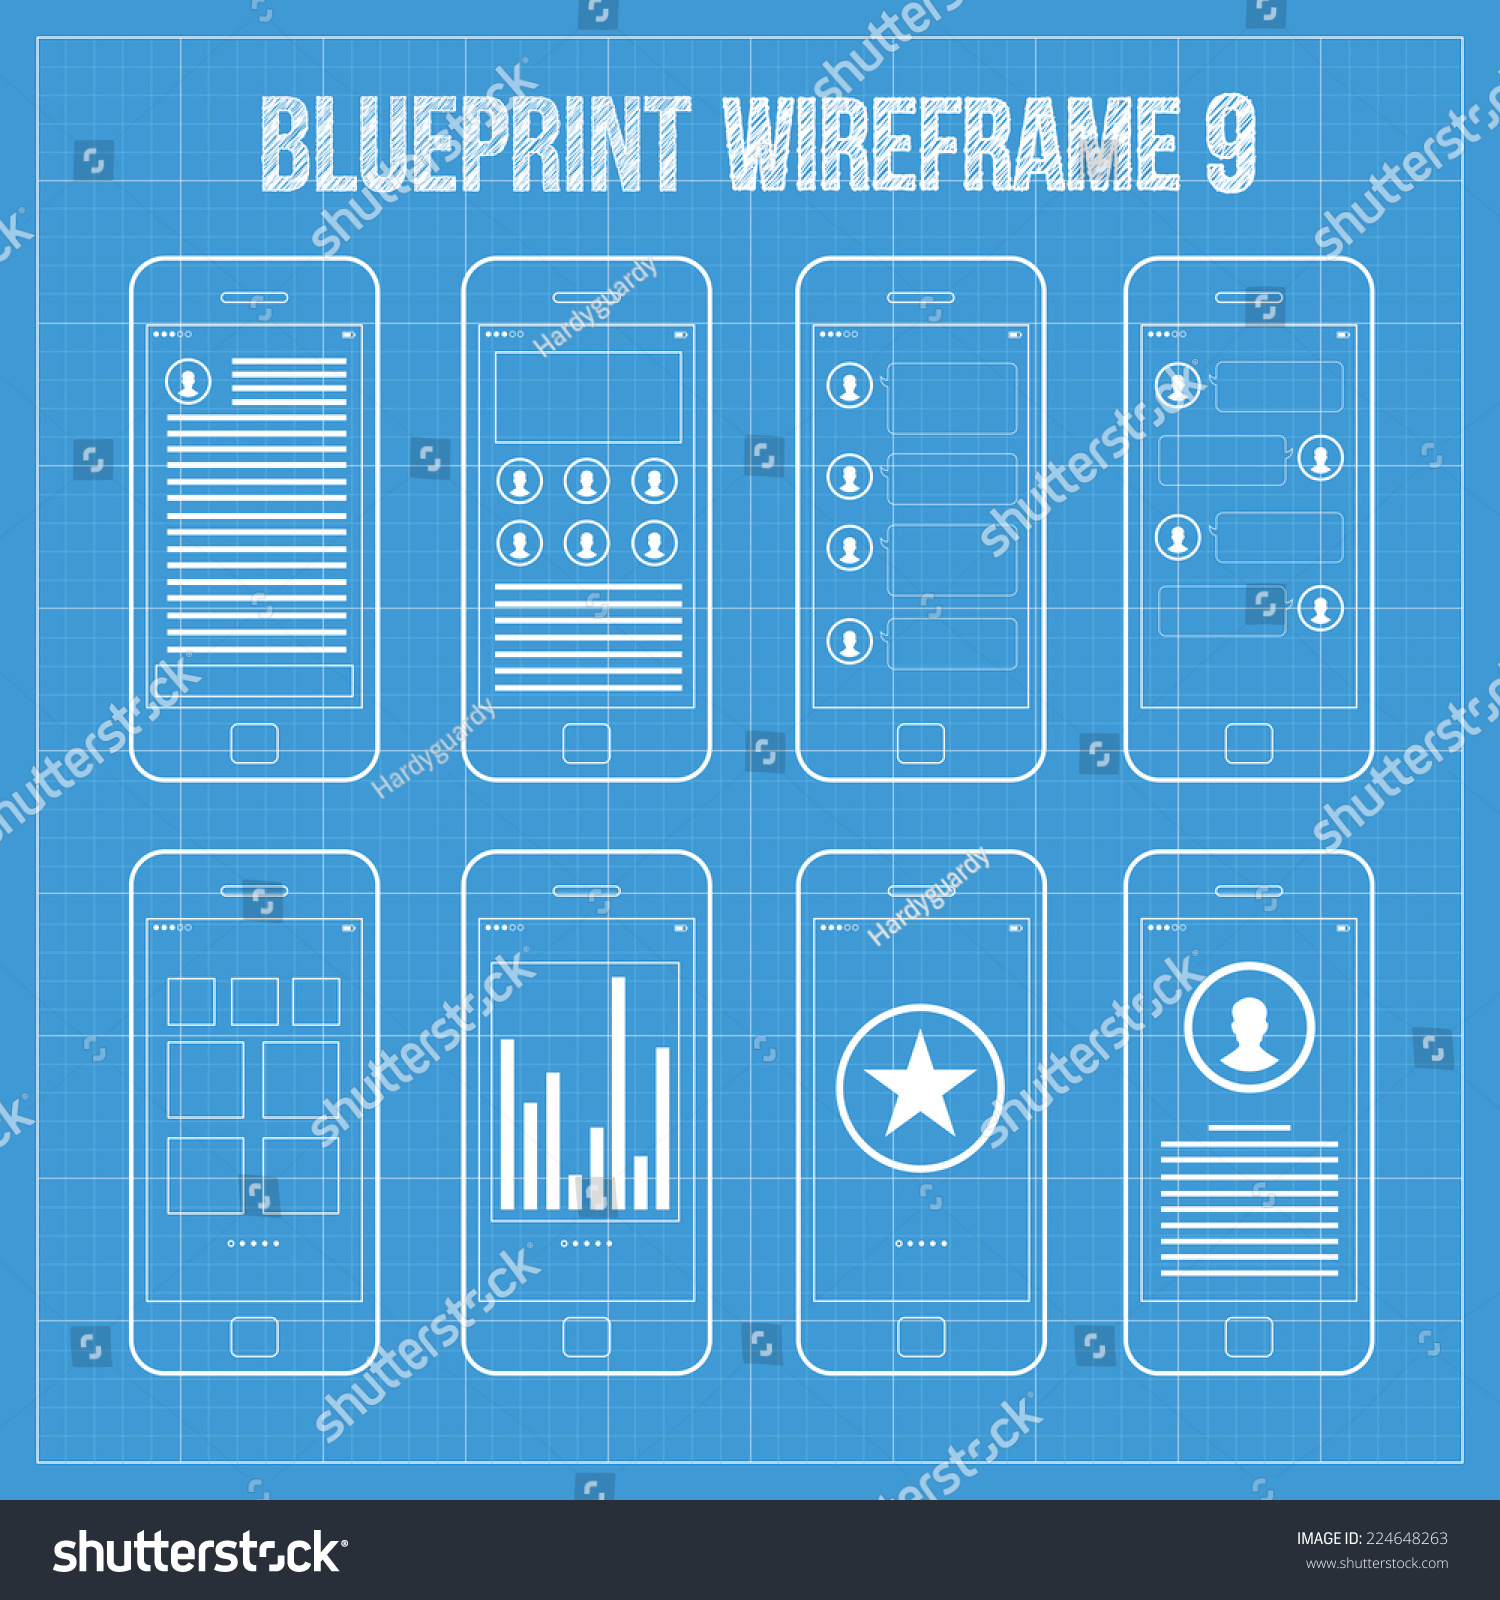 Royalty free wireframe mobile app ui kit 9 author 224648263 stock author post screen dashboard screen comment screen chat screen gallery slideshow screen statistics screen achievements screen about screen malvernweather Image collections